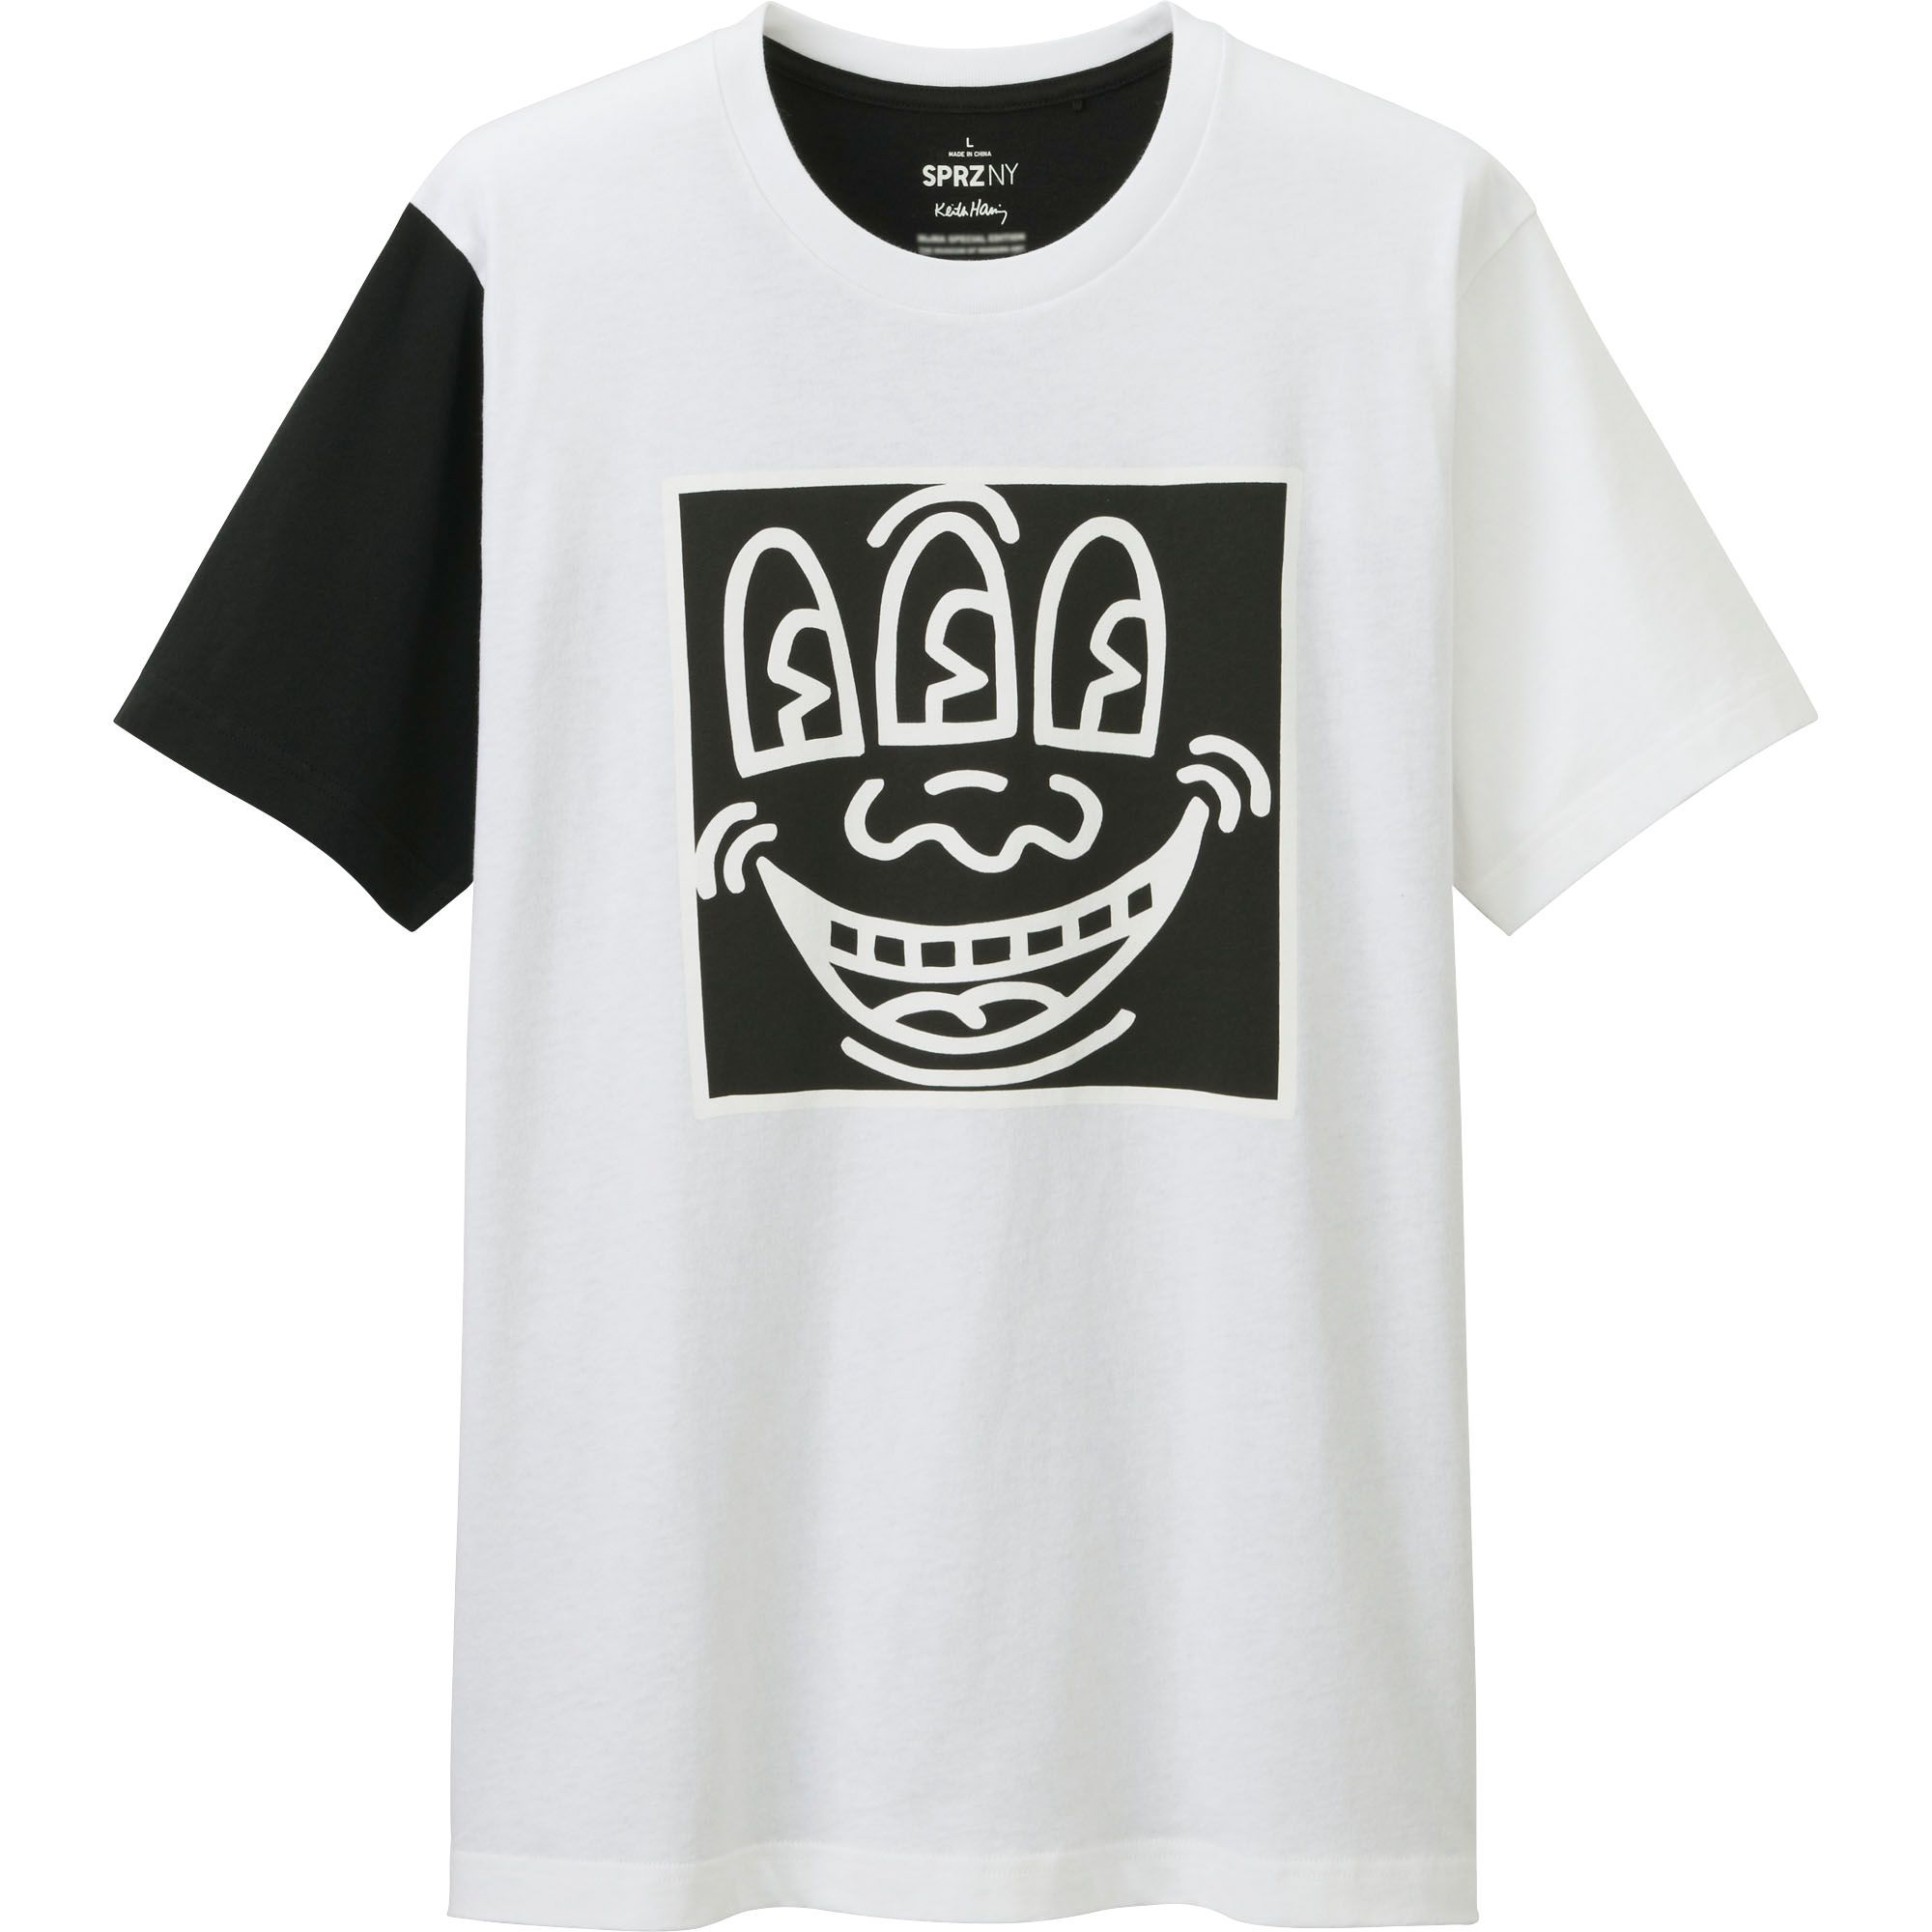 Uniqlo men sprz ny graphic t shirt keith haring in black for Uniqlo moma t shirt